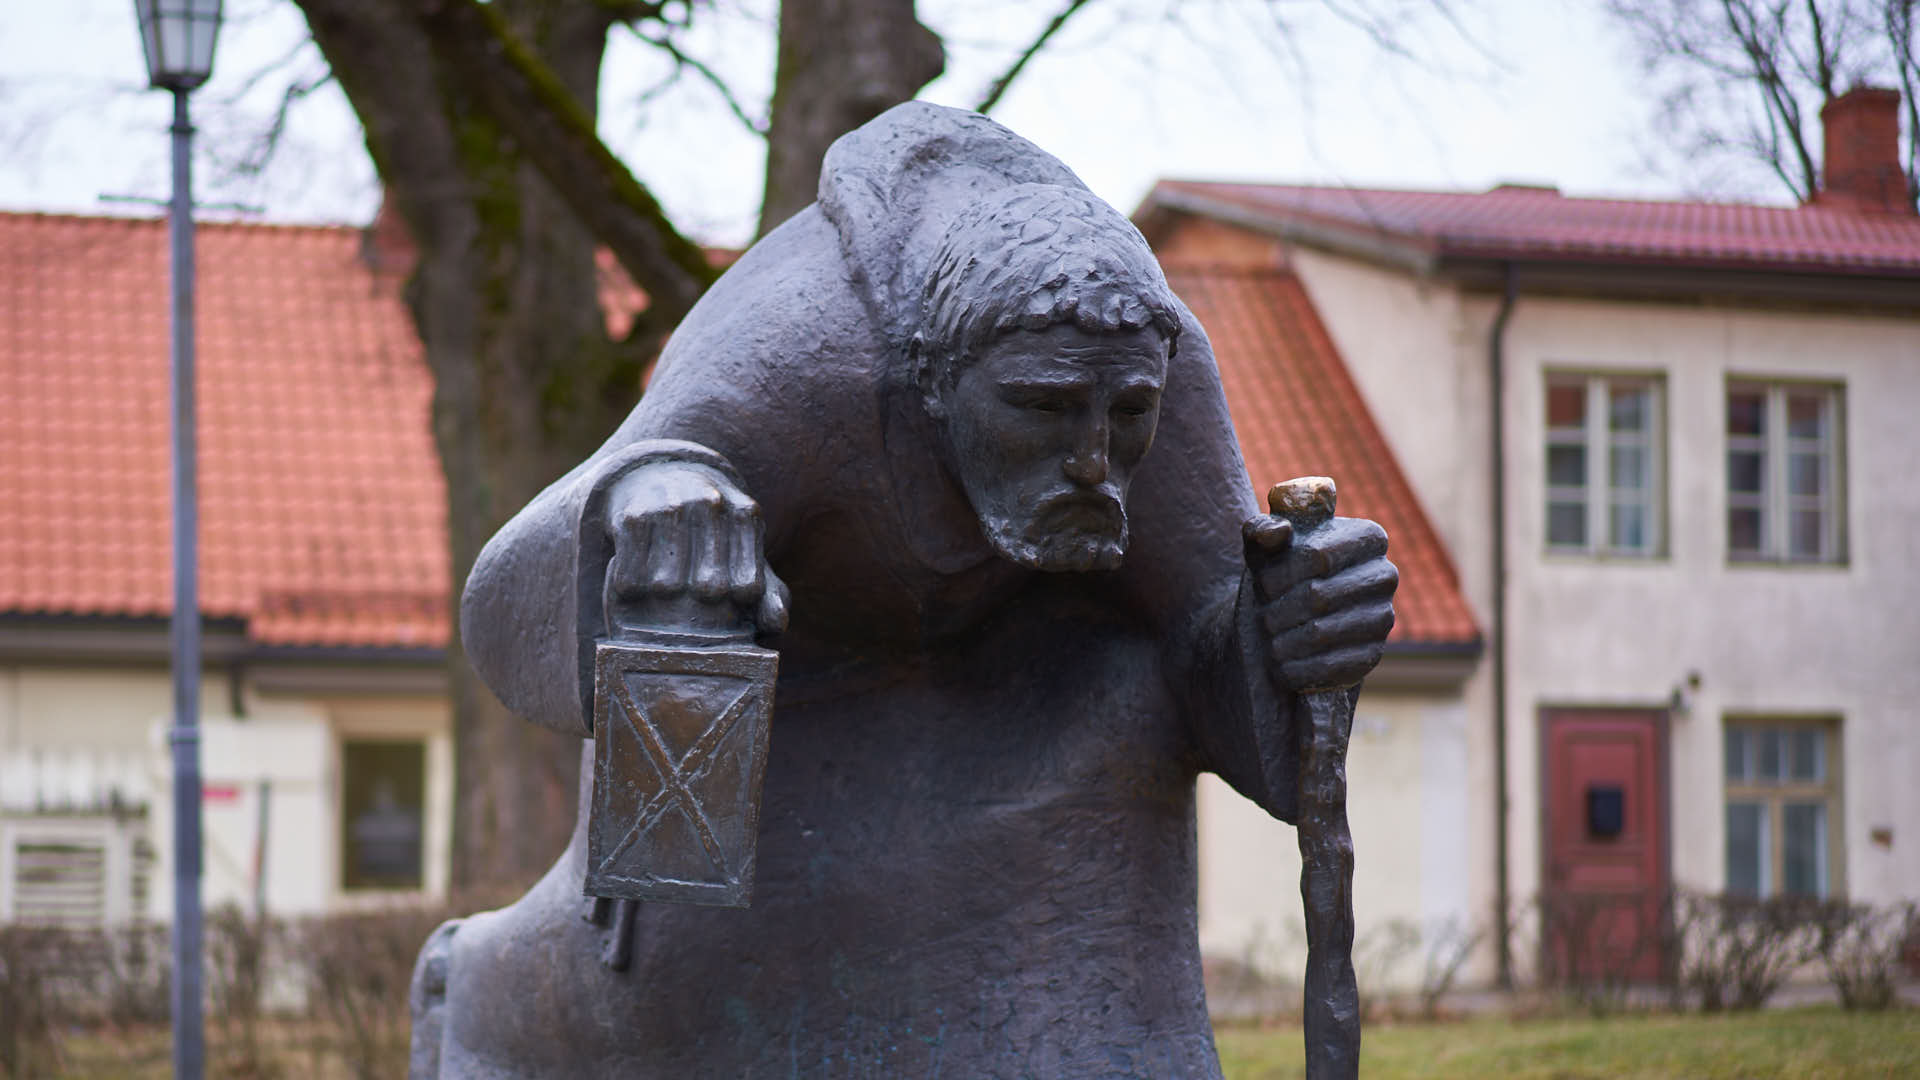 Statue of Old Man of Time in Cesis, Latvia